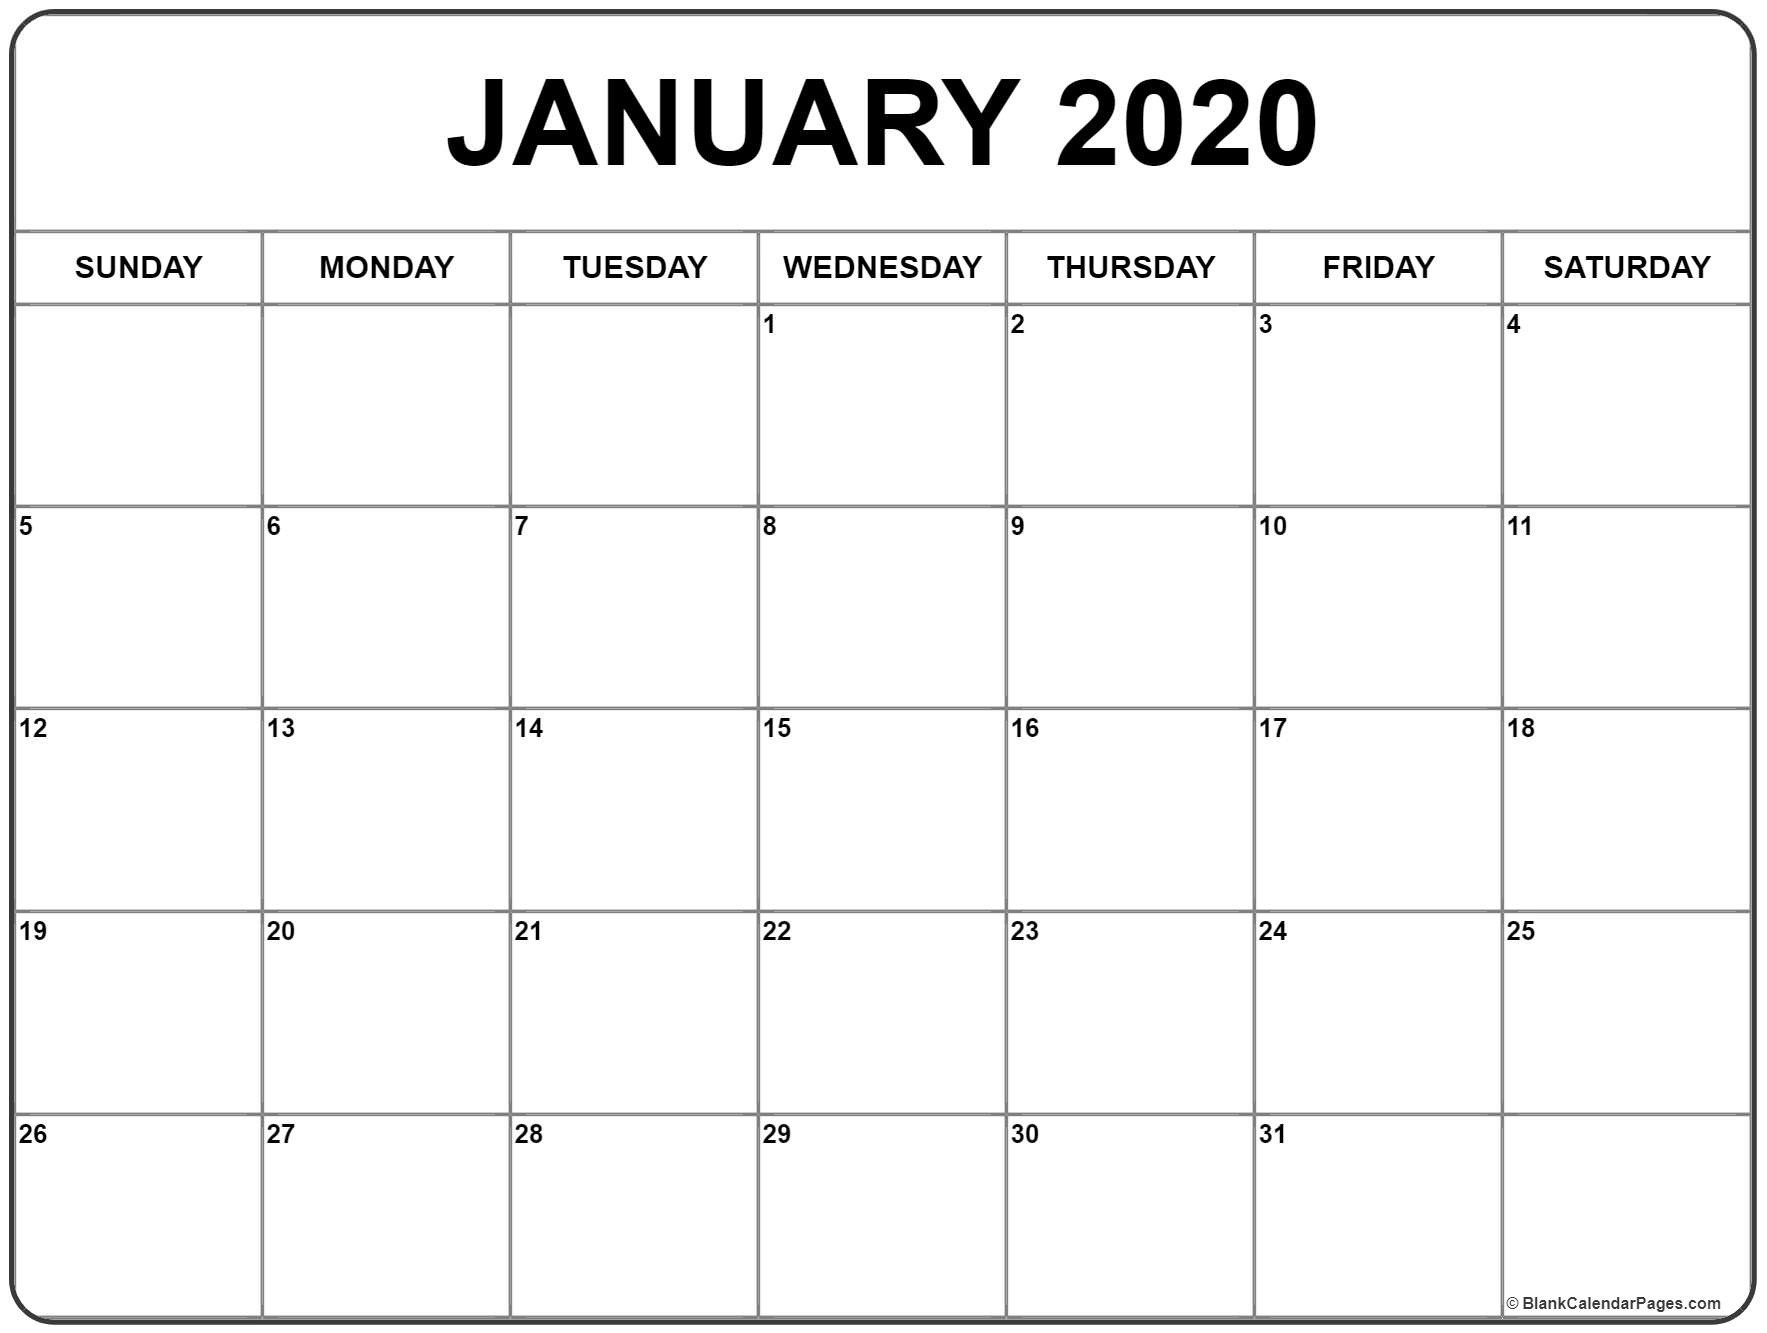 Islamic Calendar 2020 – Printable Week Calendar-January 2020 Hijri Calendar